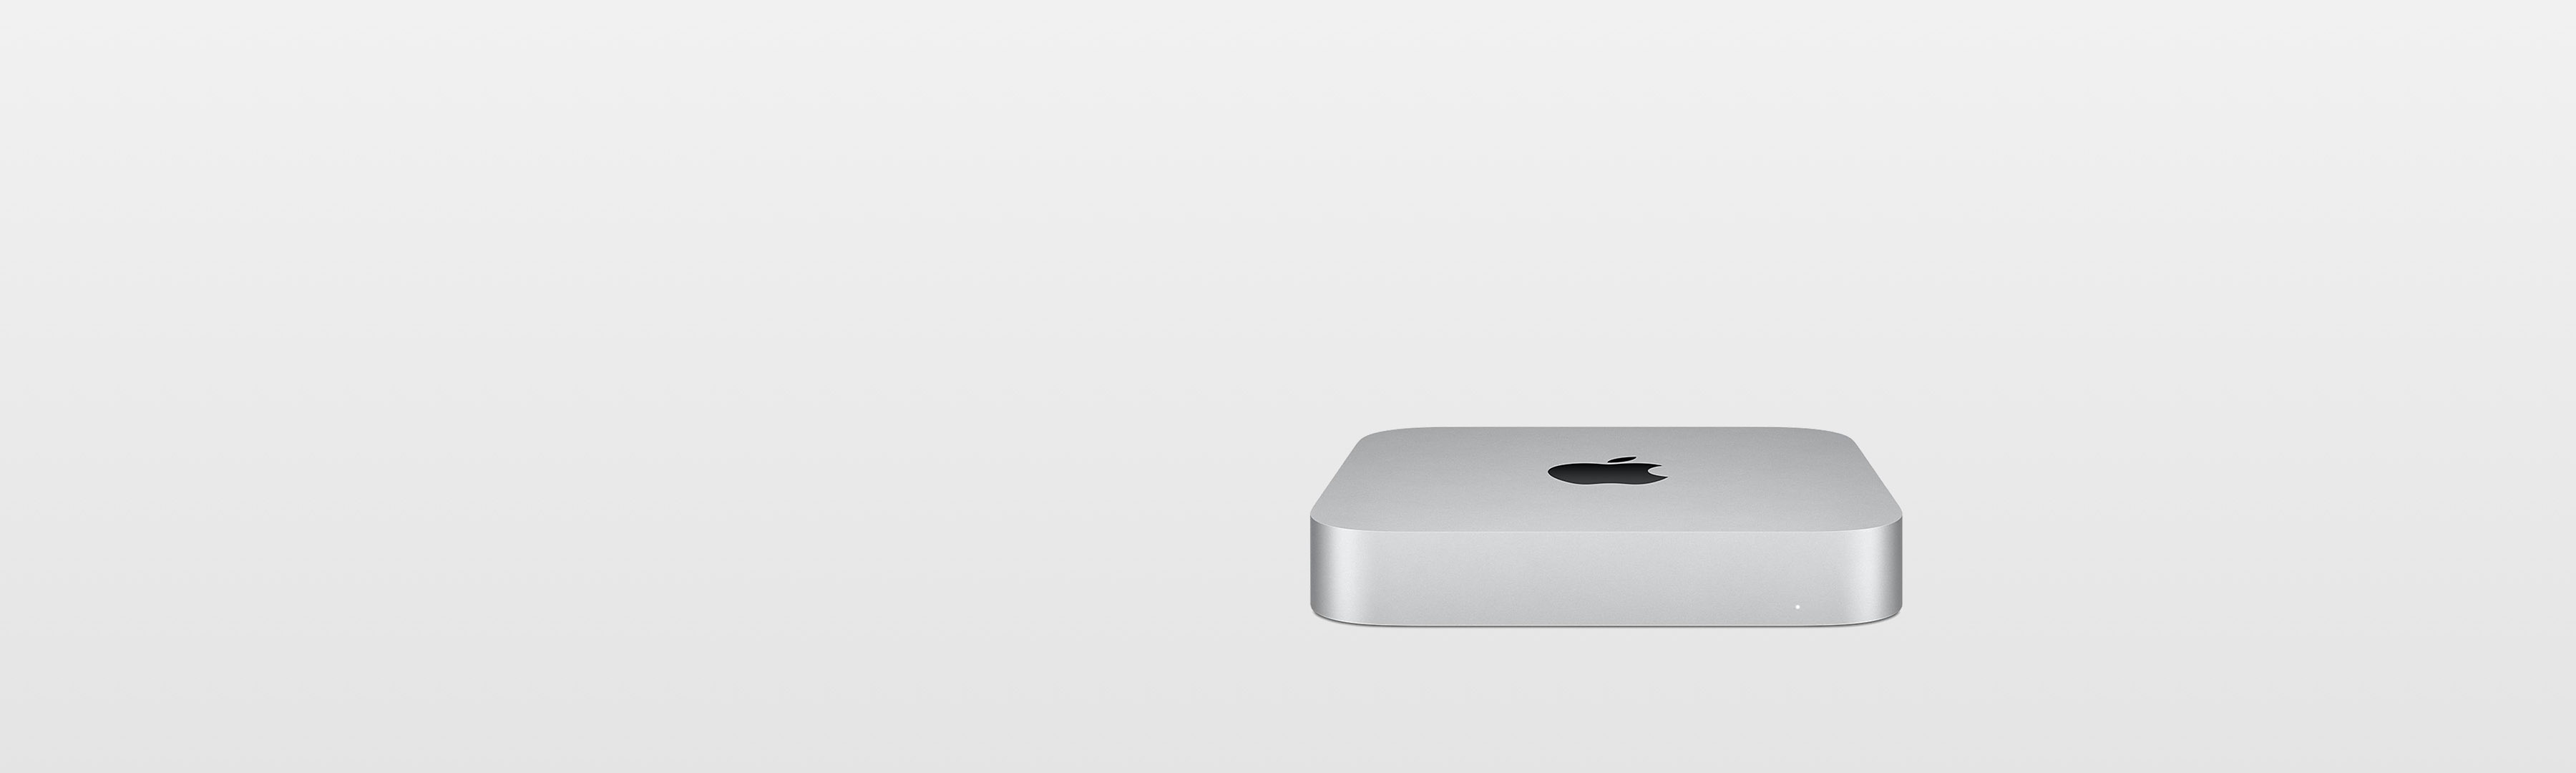 how do you install programs on a mac mini